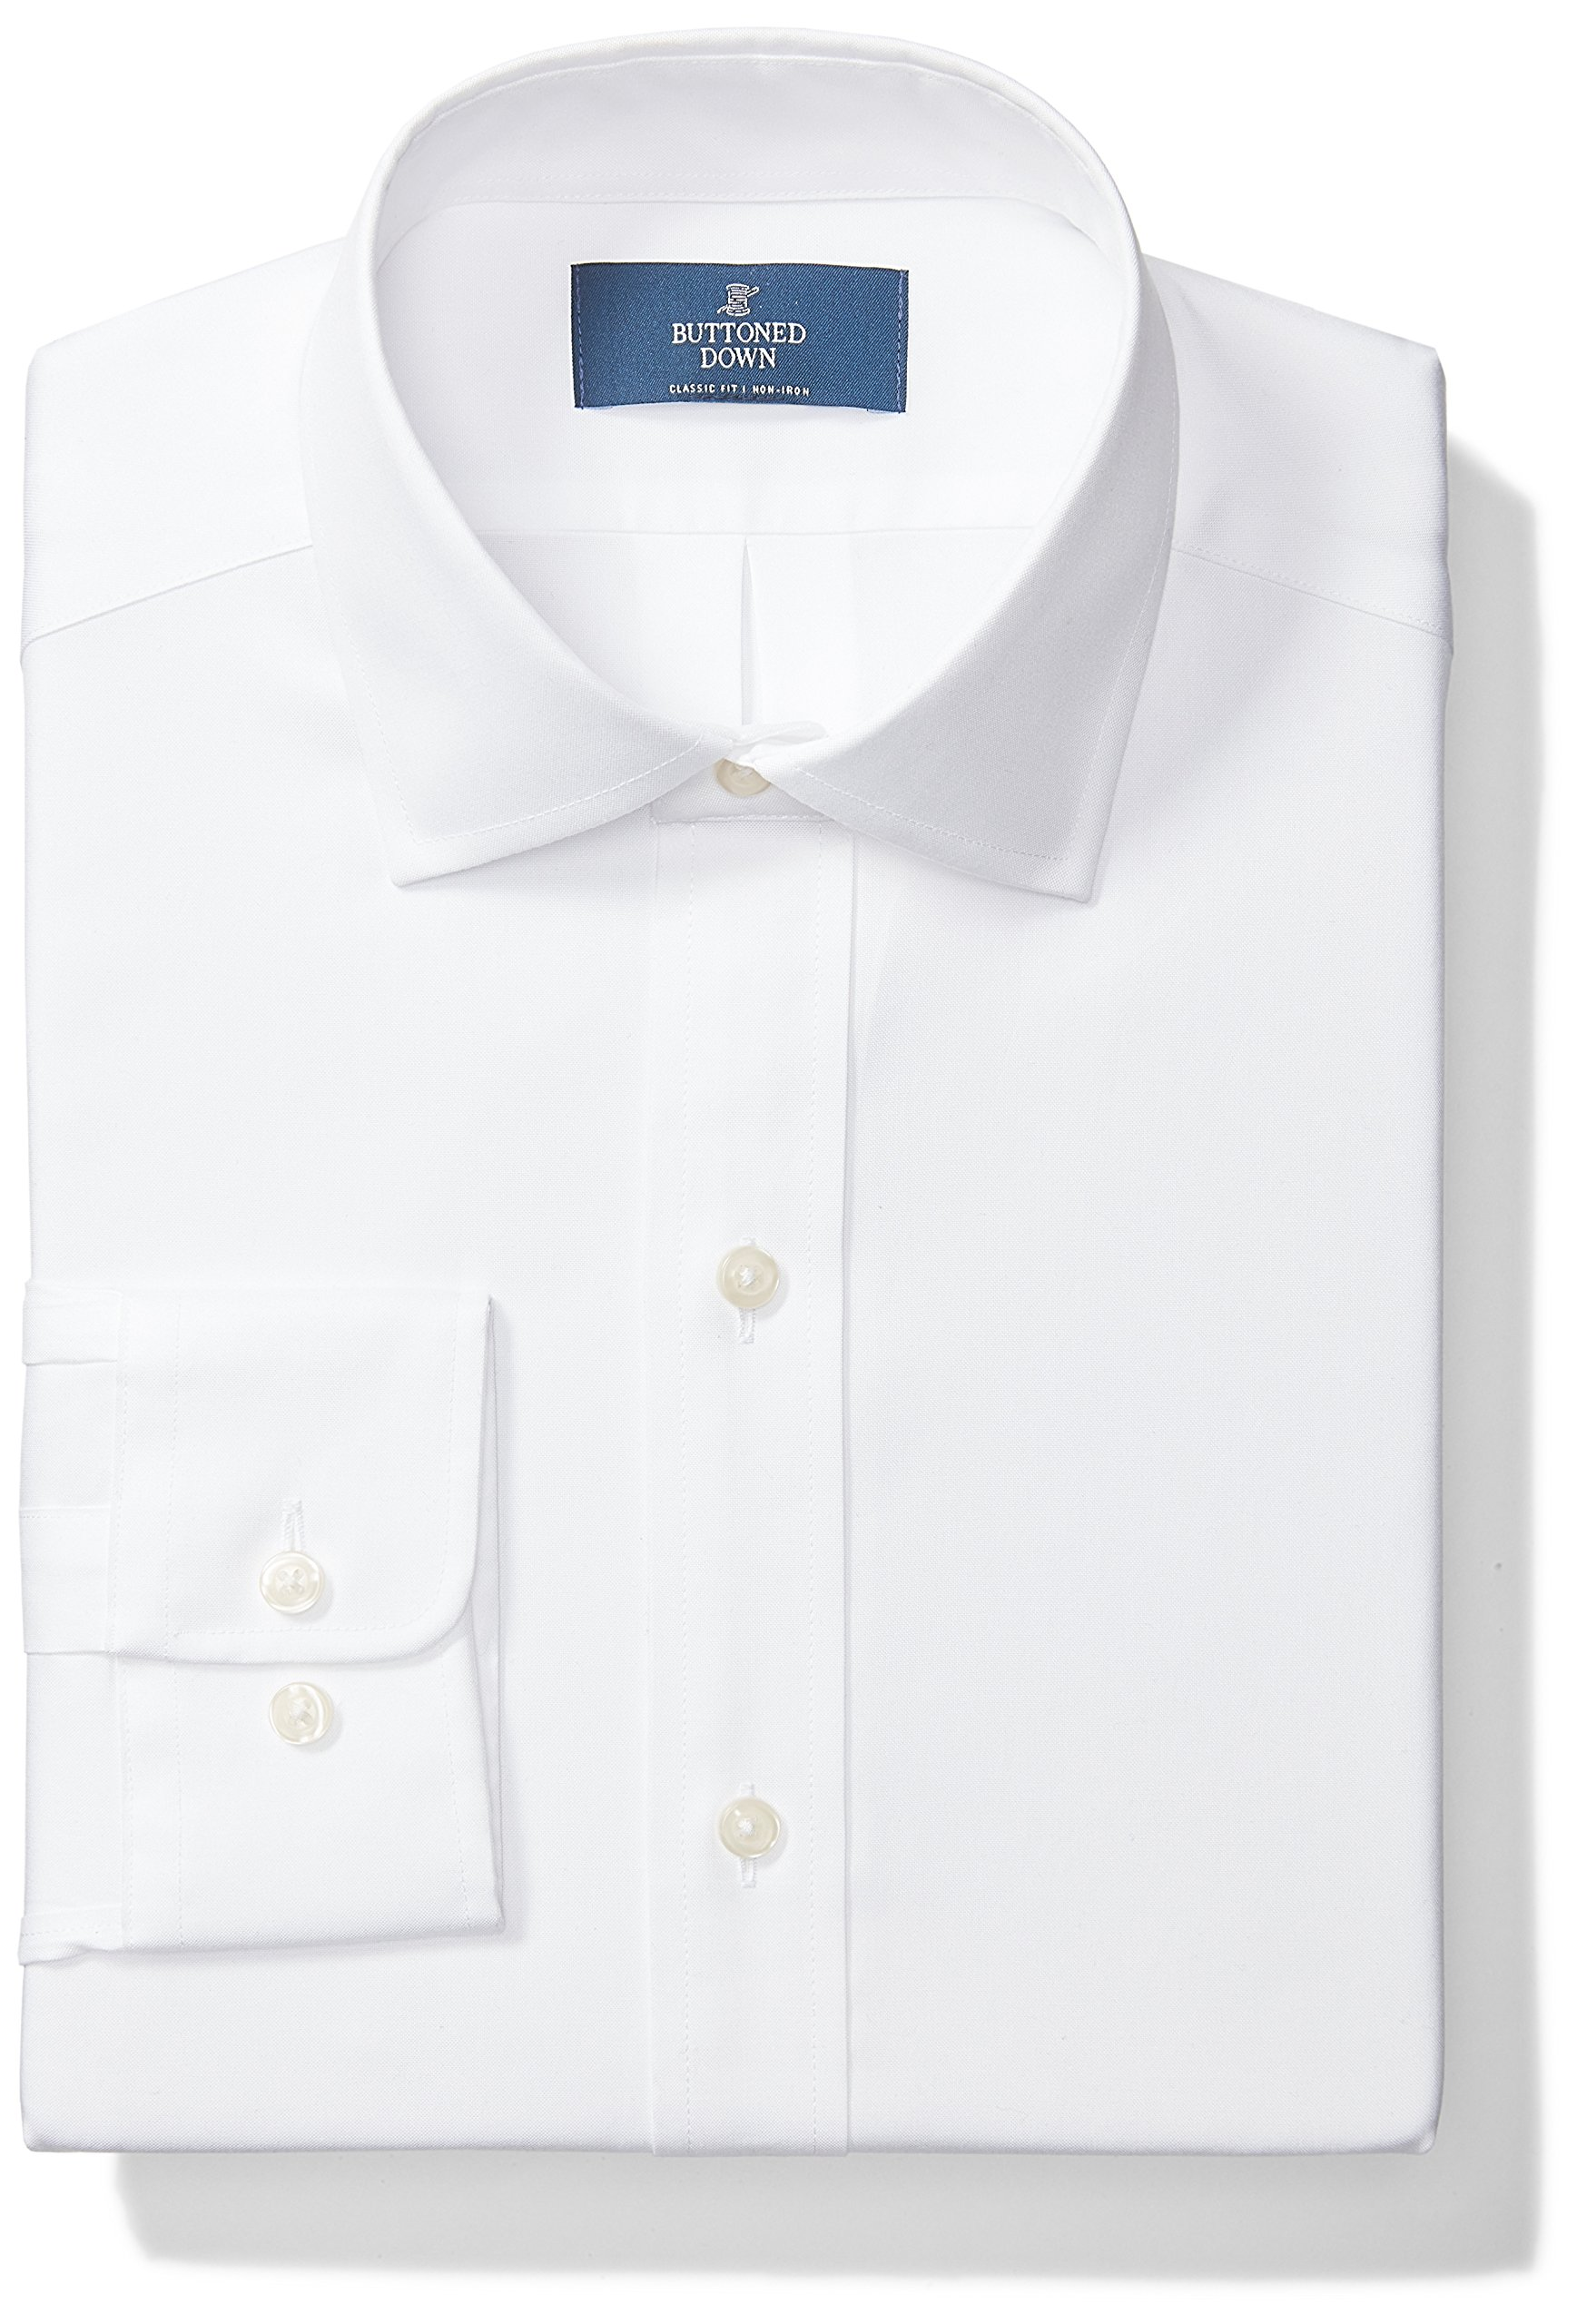 Buttoned Down Men's Classic Fit Spread Collar Solid Non-Iron Dress Shirt (No Pocket), White, 18'' Neck 36'' Sleeve (Big and Tall)